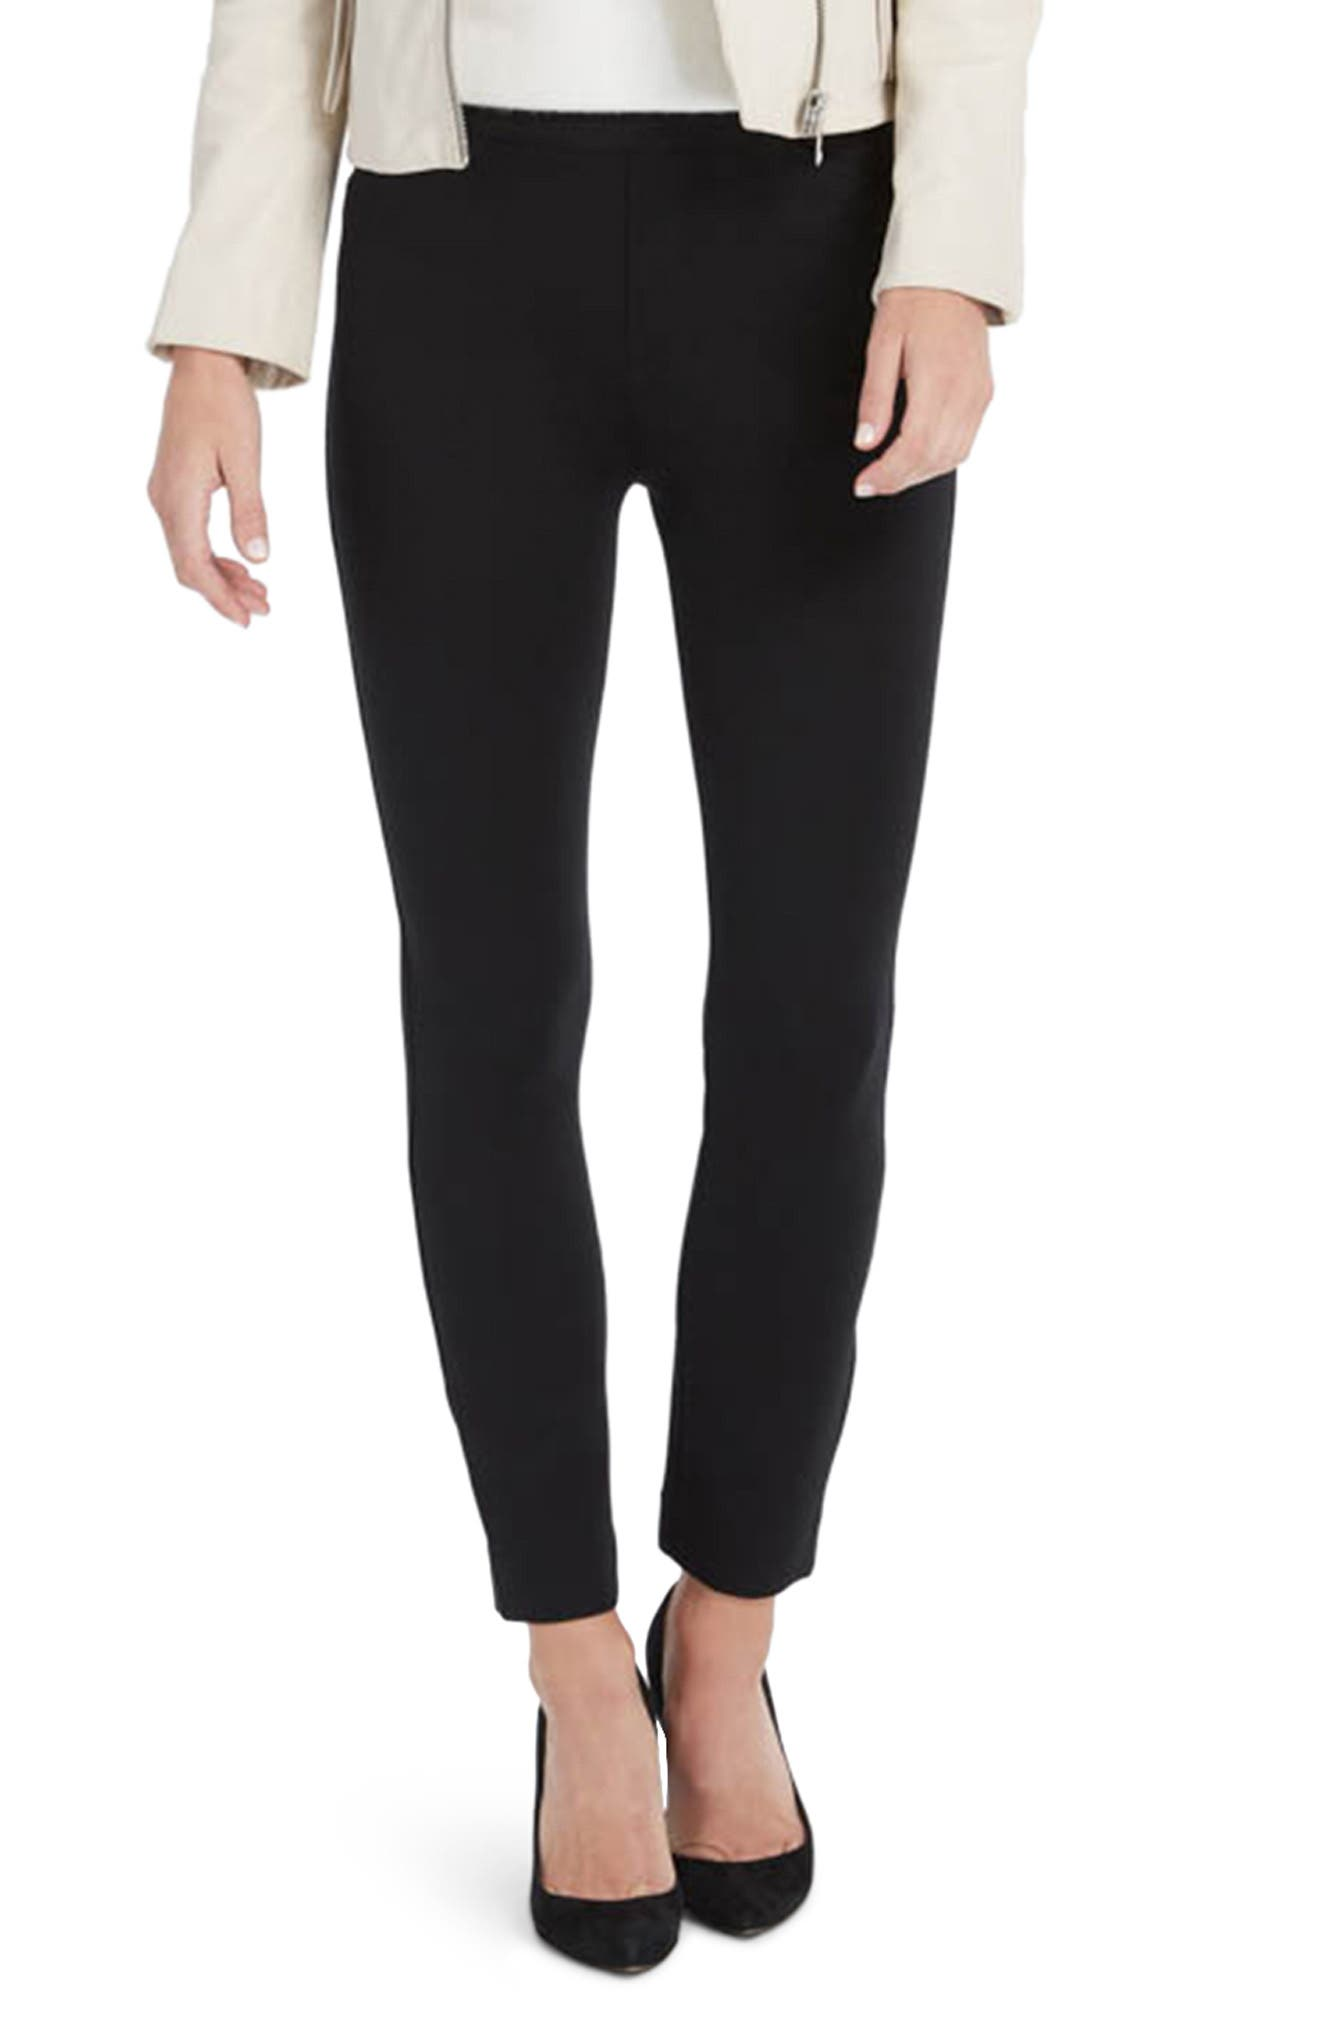 SPANX® The Perfect Black Pant - Back Seam Skinny Pants (Regular & Plus Size)